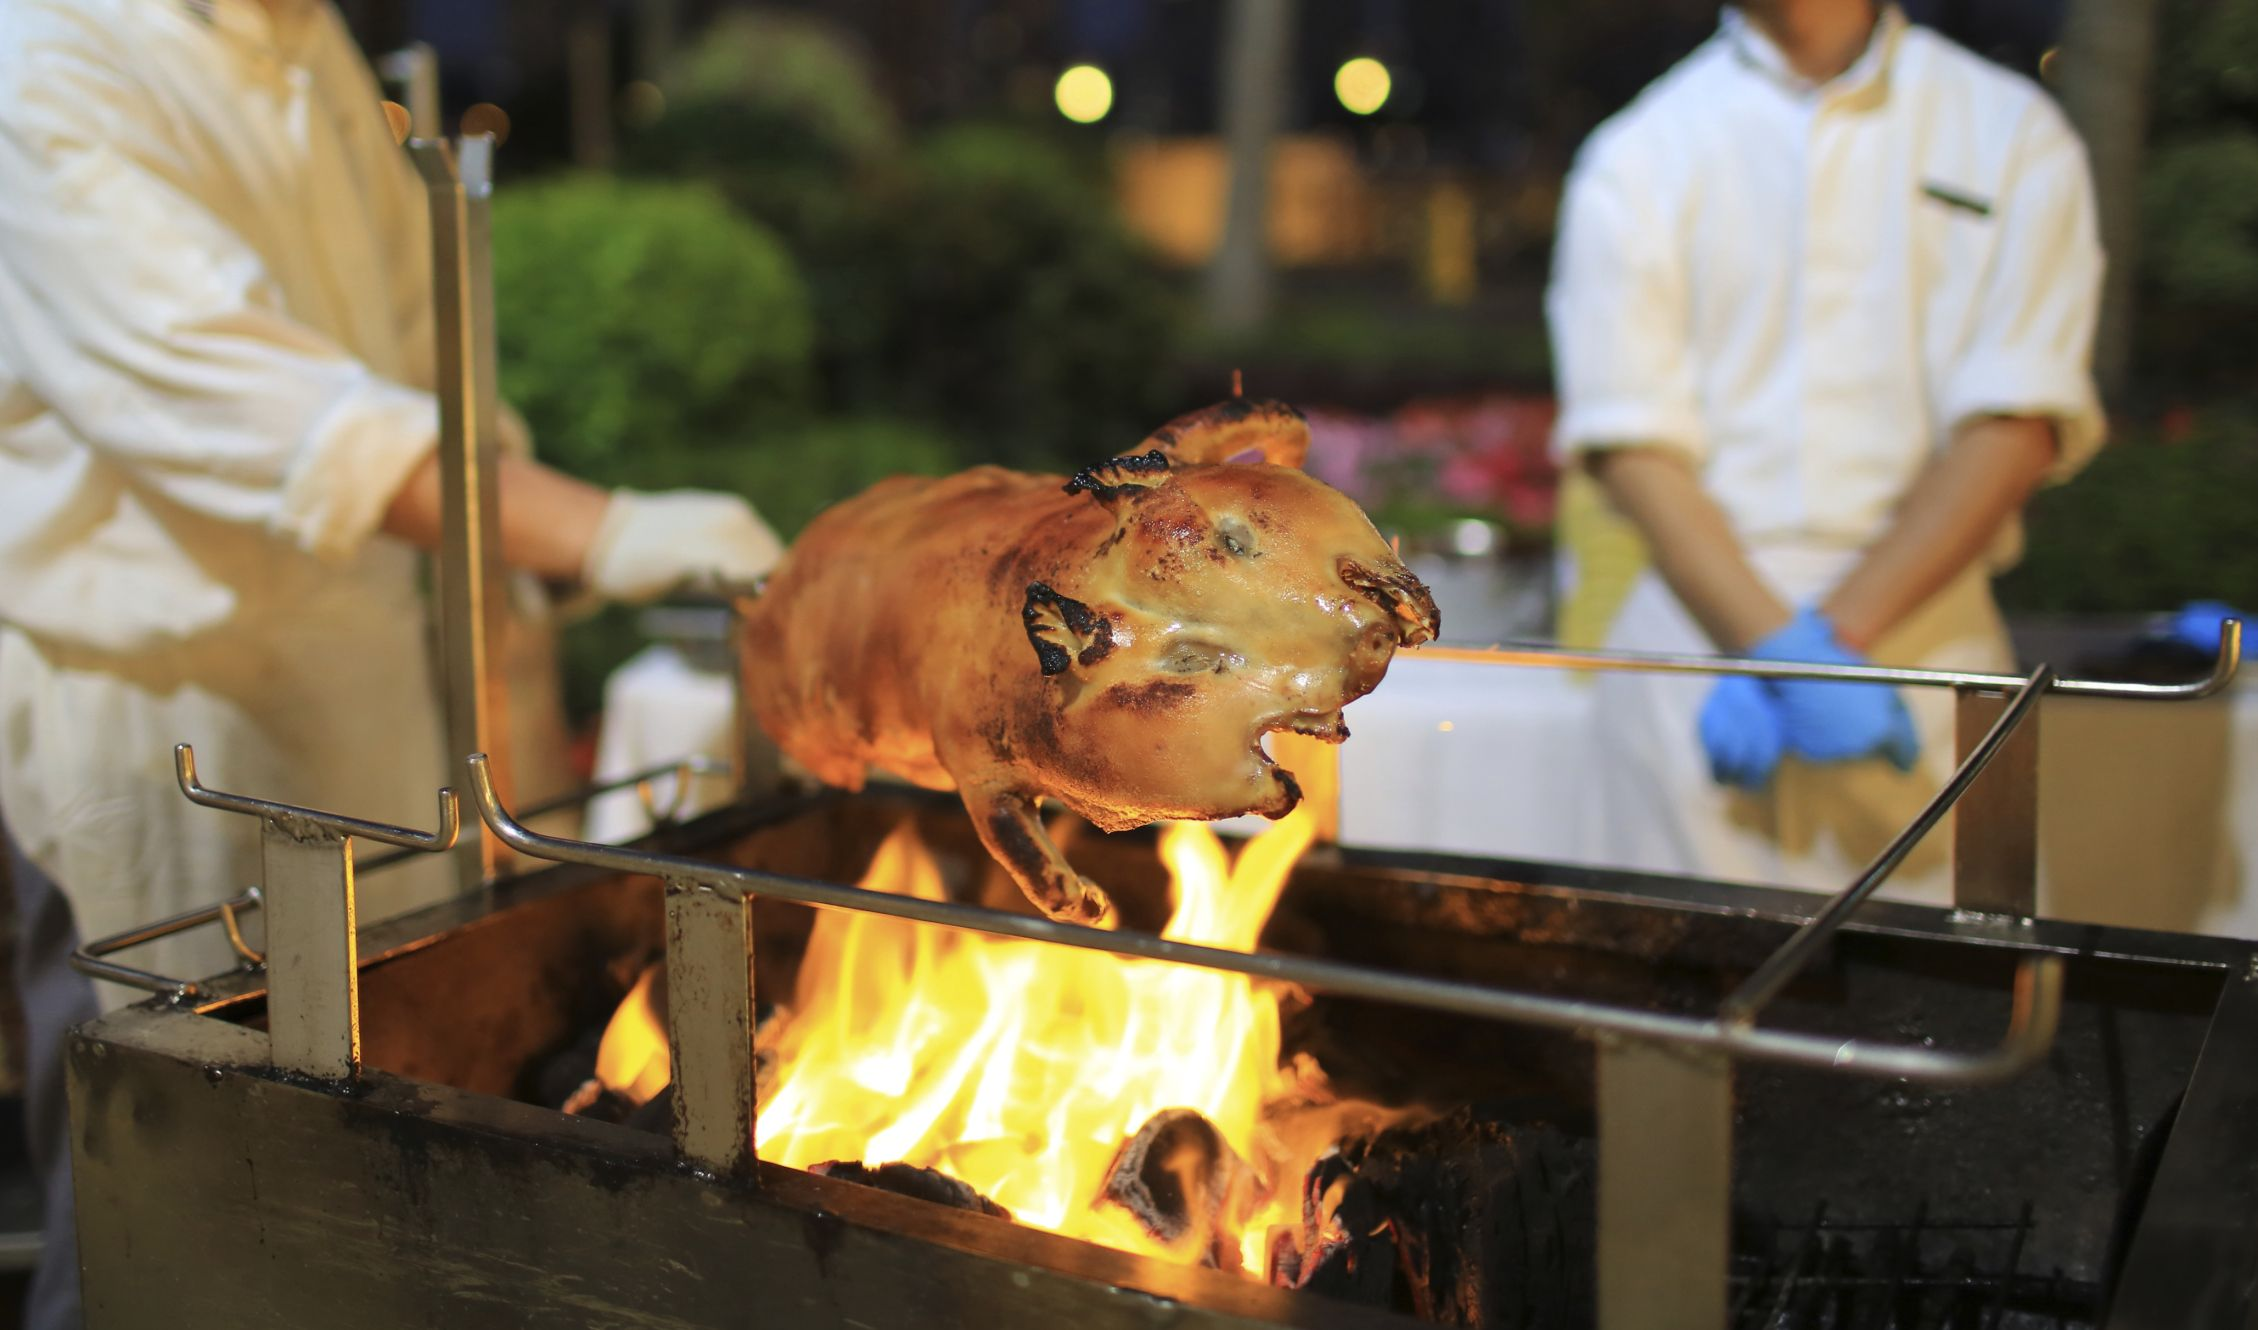 Types Of Food To Have At A Pig Roast Wedding TipsWedding MenuHitching